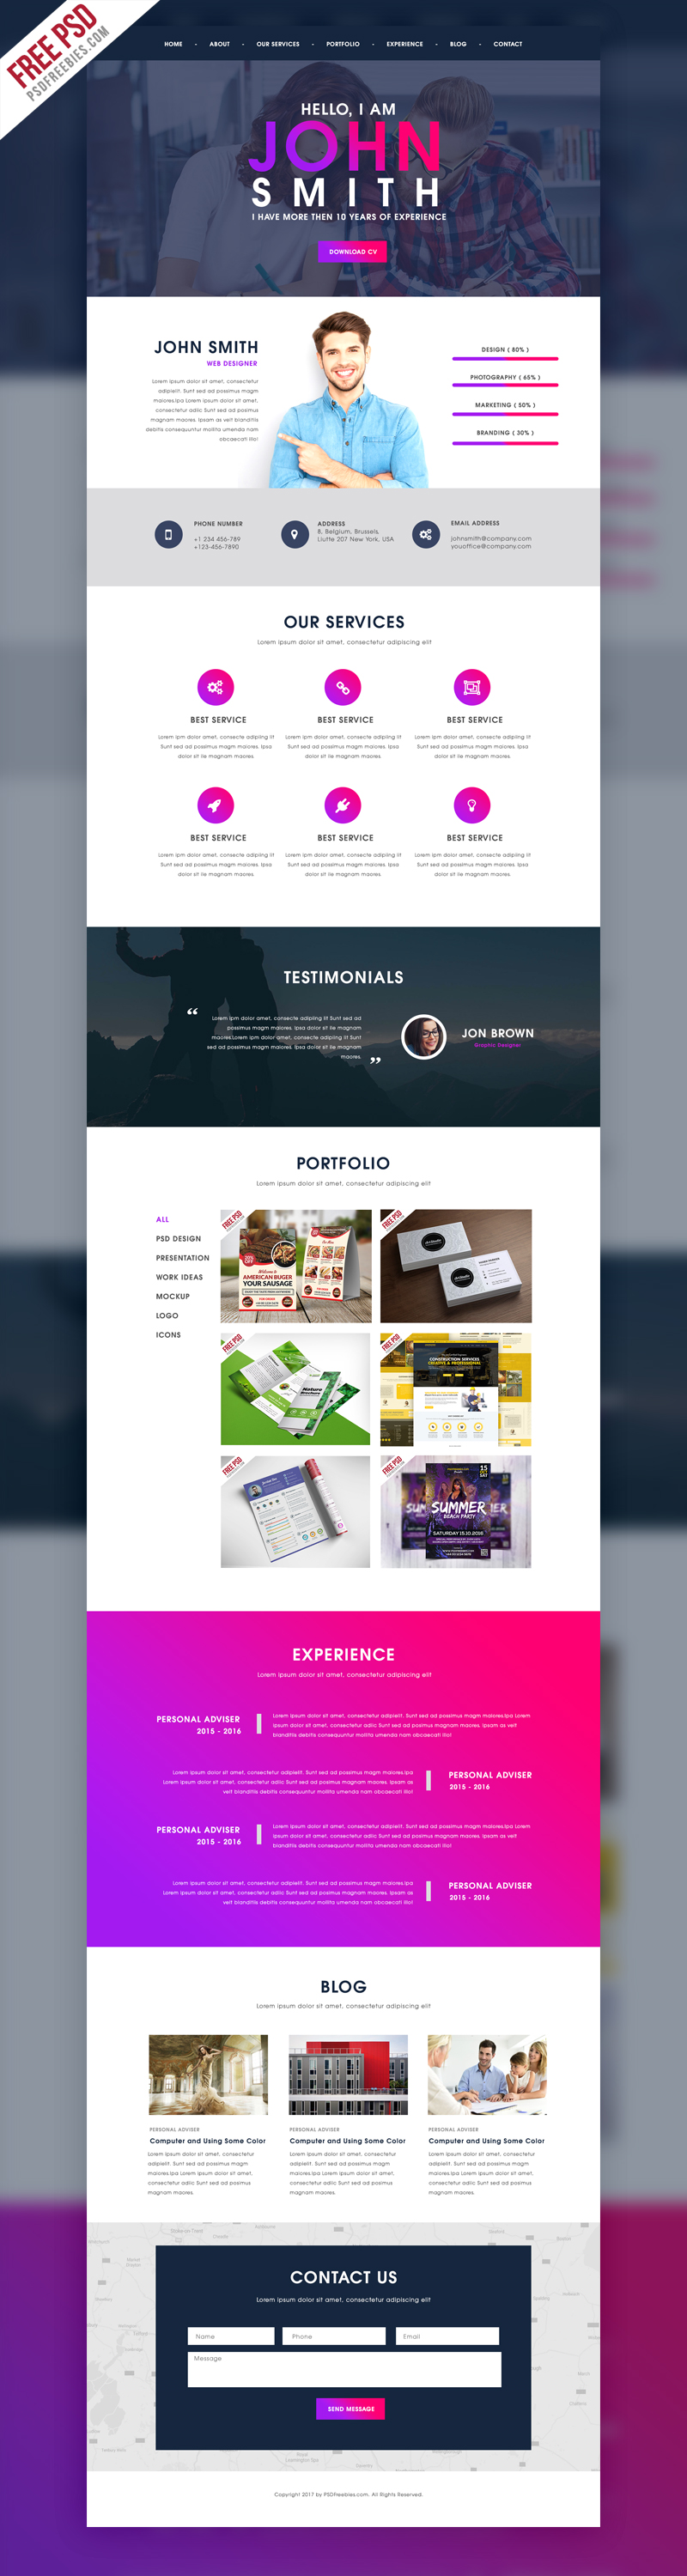 Creative One Page Portfolio Website Template Free Psd Free Web